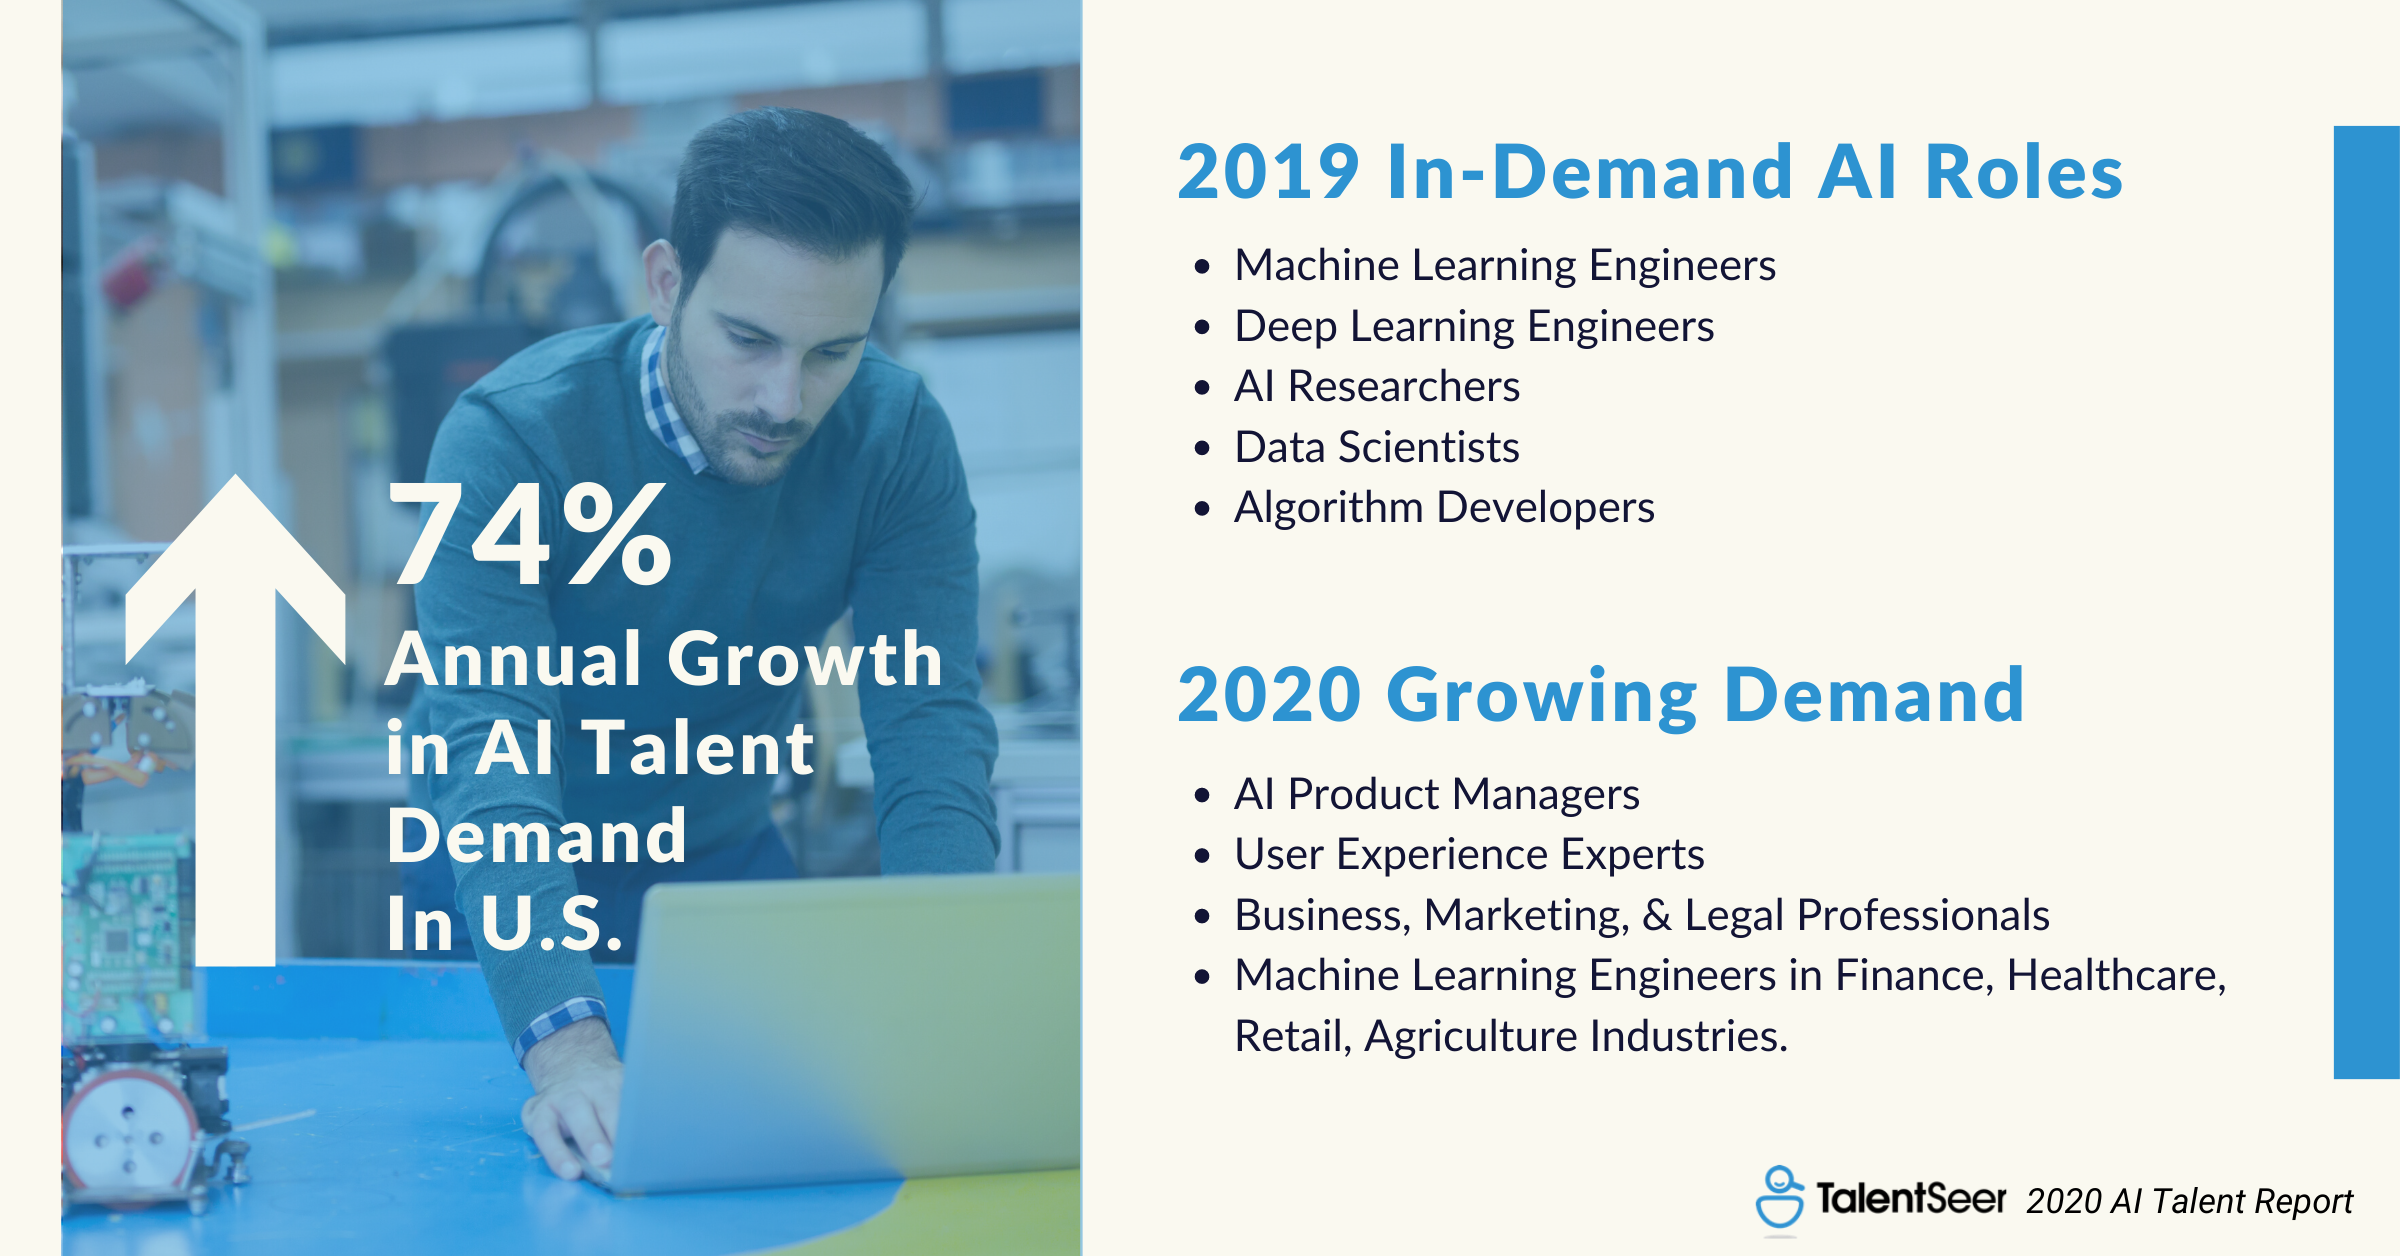 TalentSeer 2020 AI talent report with insights on talent demand, compensation packages, new trends and talent acquisition & retention strategies